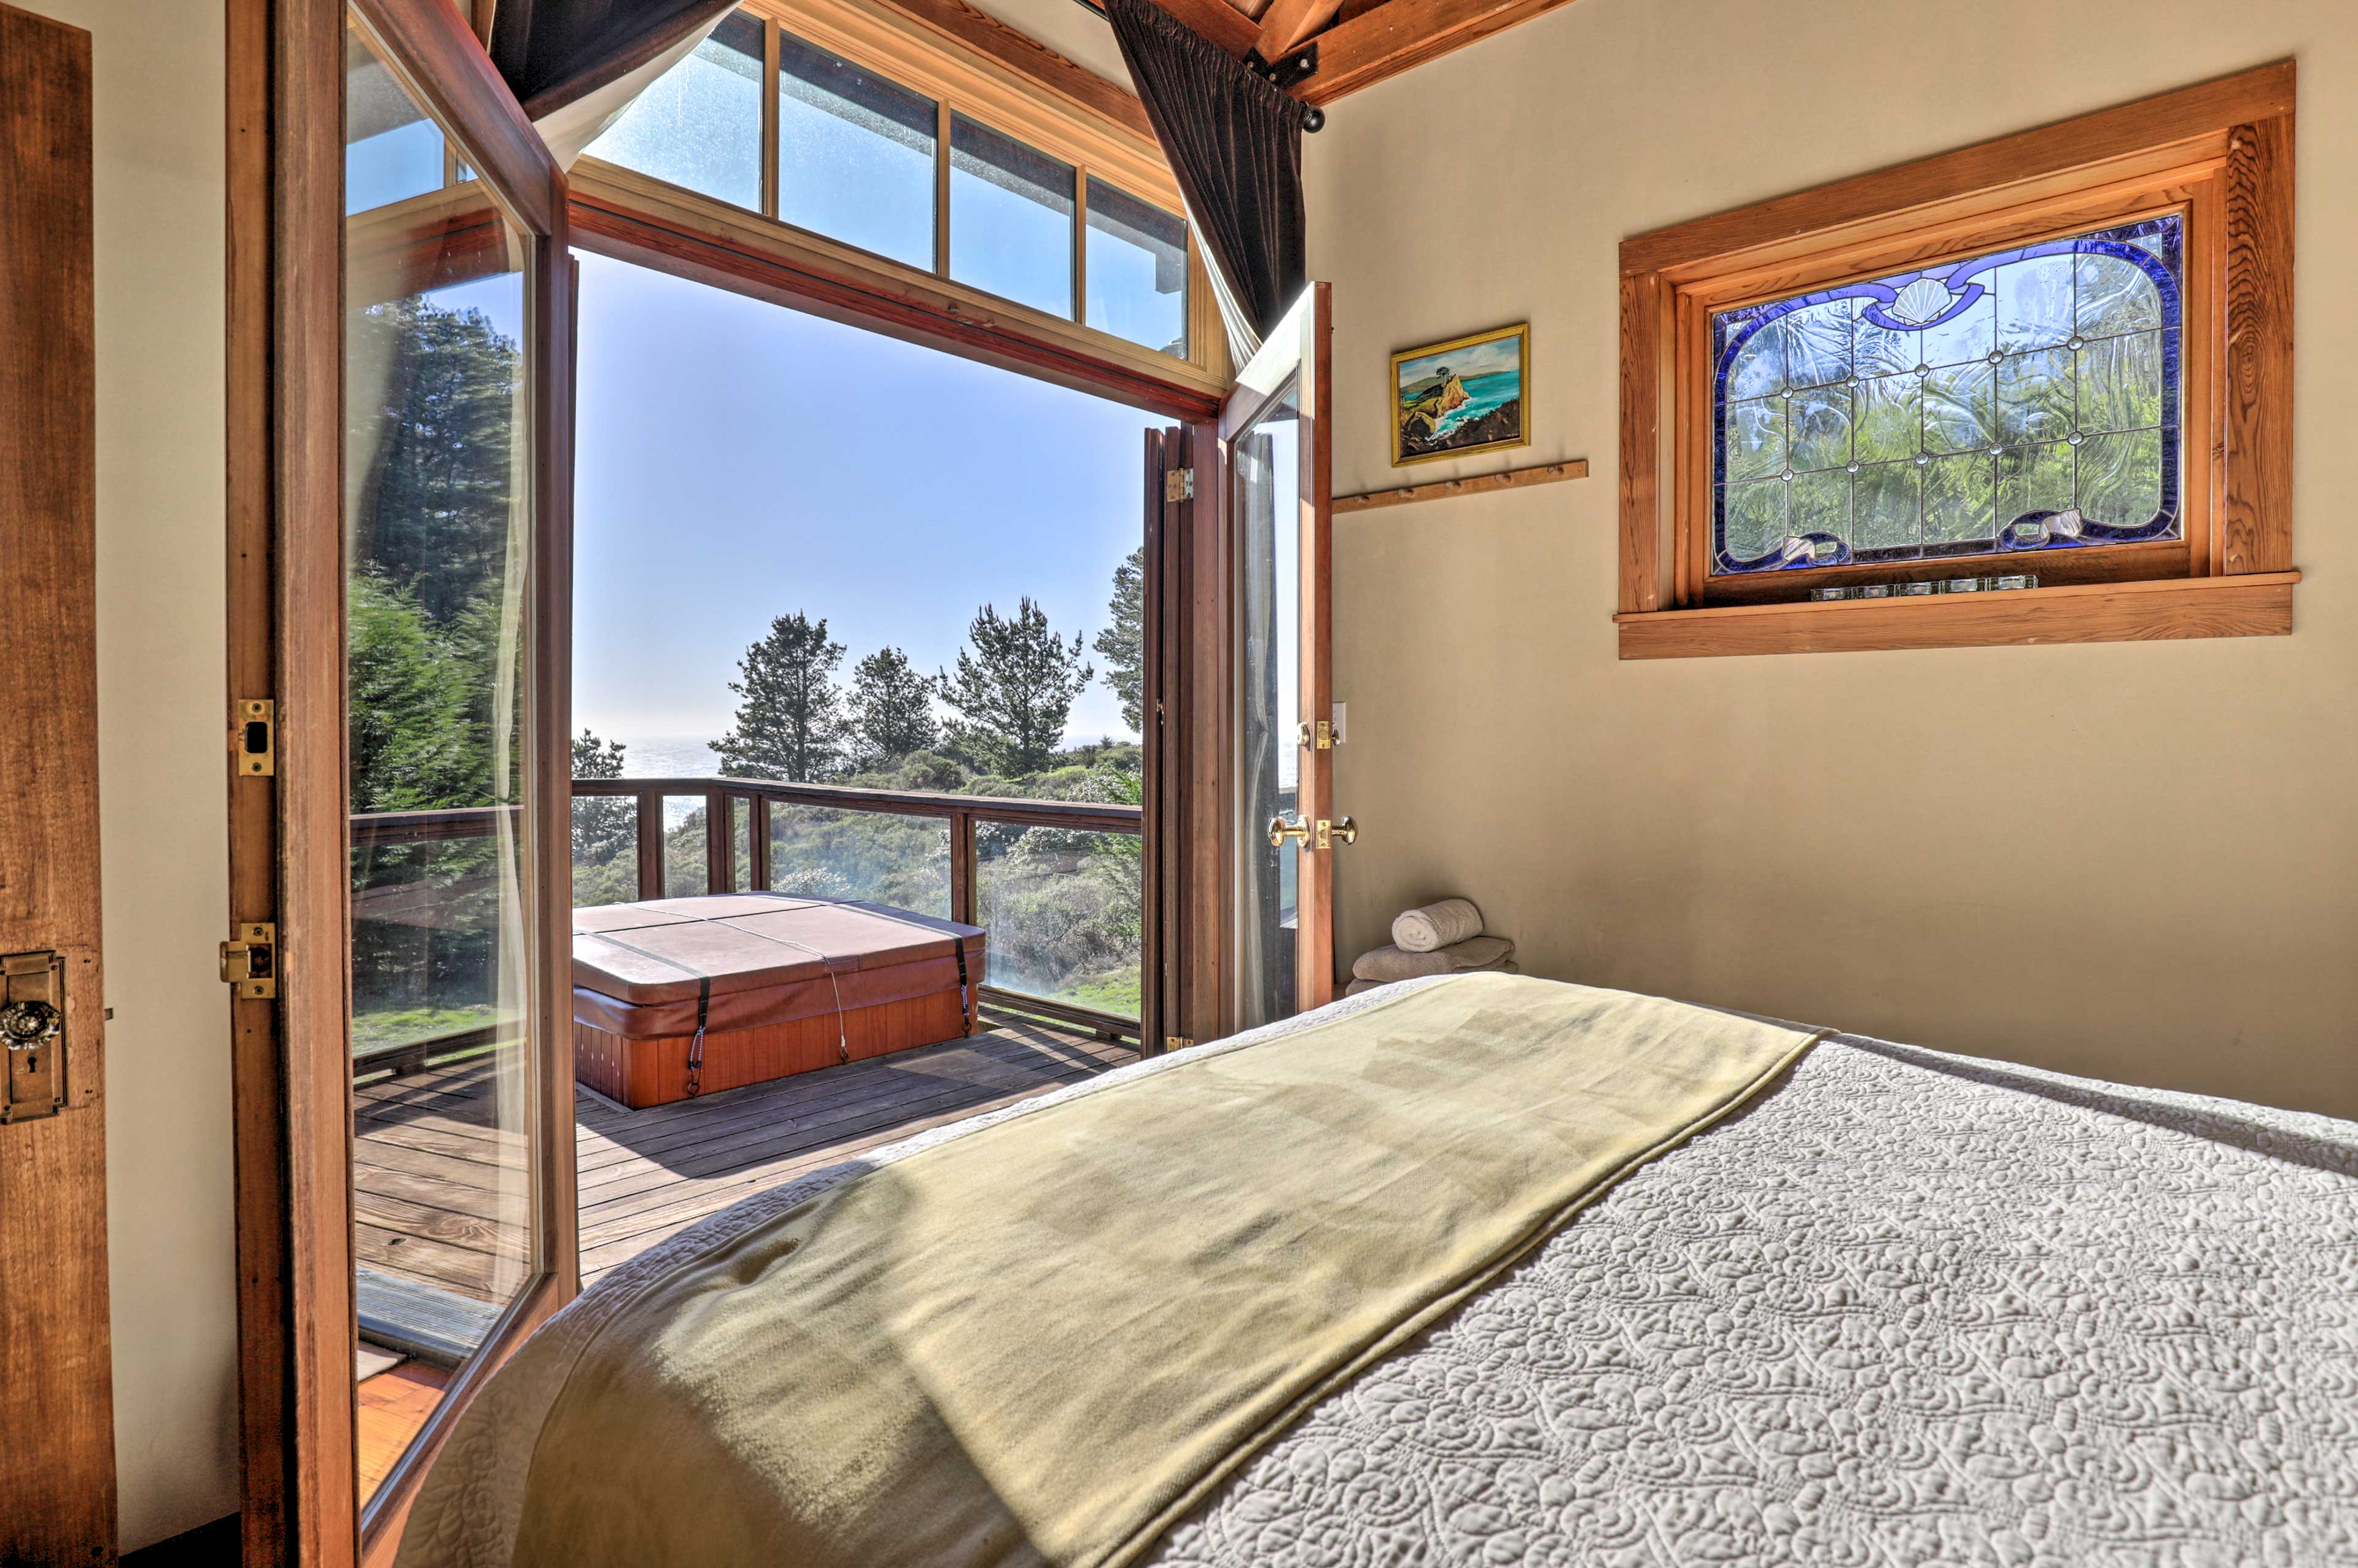 Walk out of the french doors to take a soak in the private hot tub.